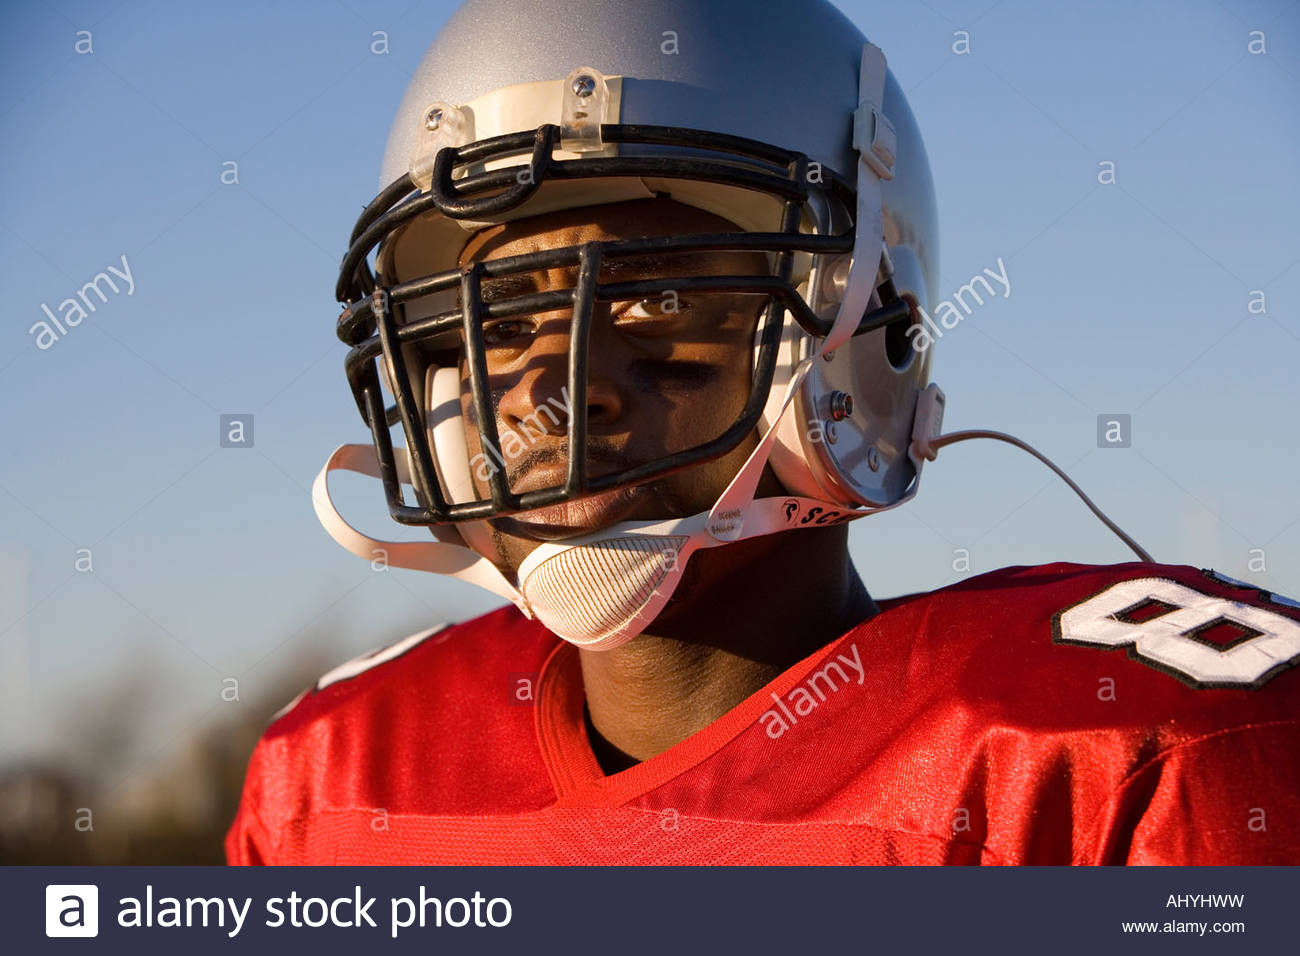 American football player wearing red football strip and protective helmet, close-up, portrait - Stock Image